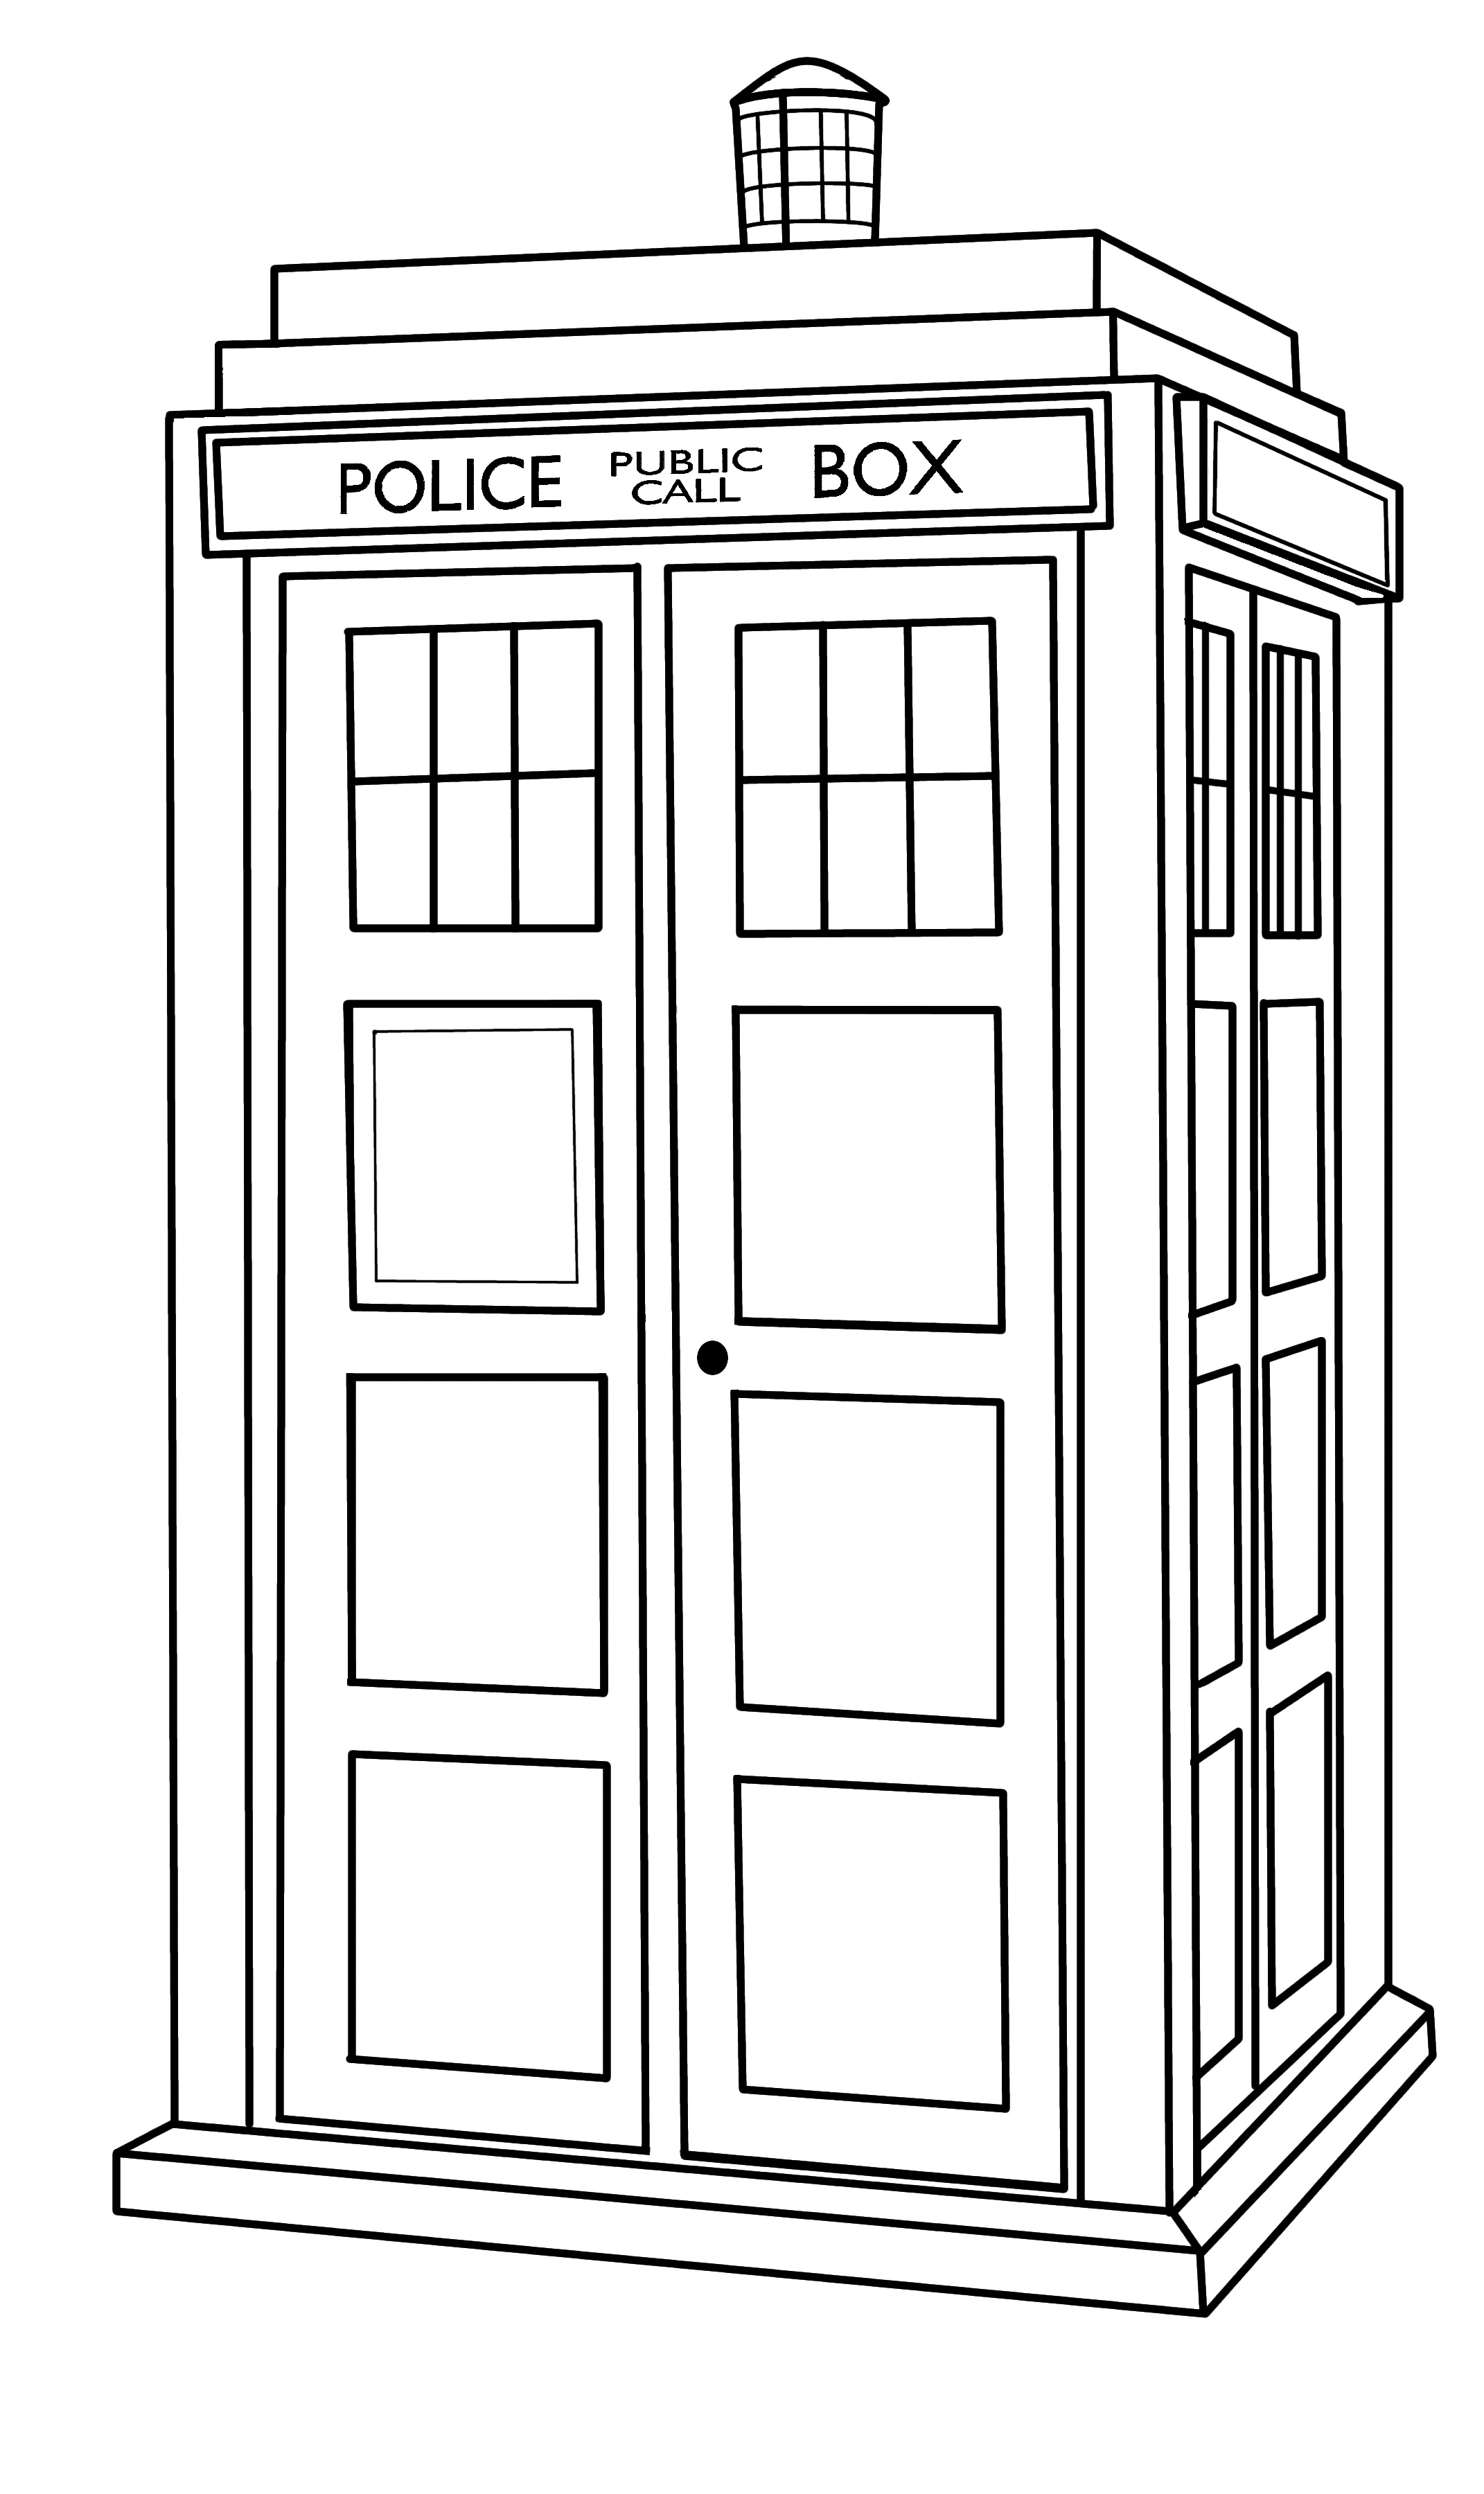 tardis colouring pages tardis doctor who line art drawing coloring tardis ex b tardis colouring pages